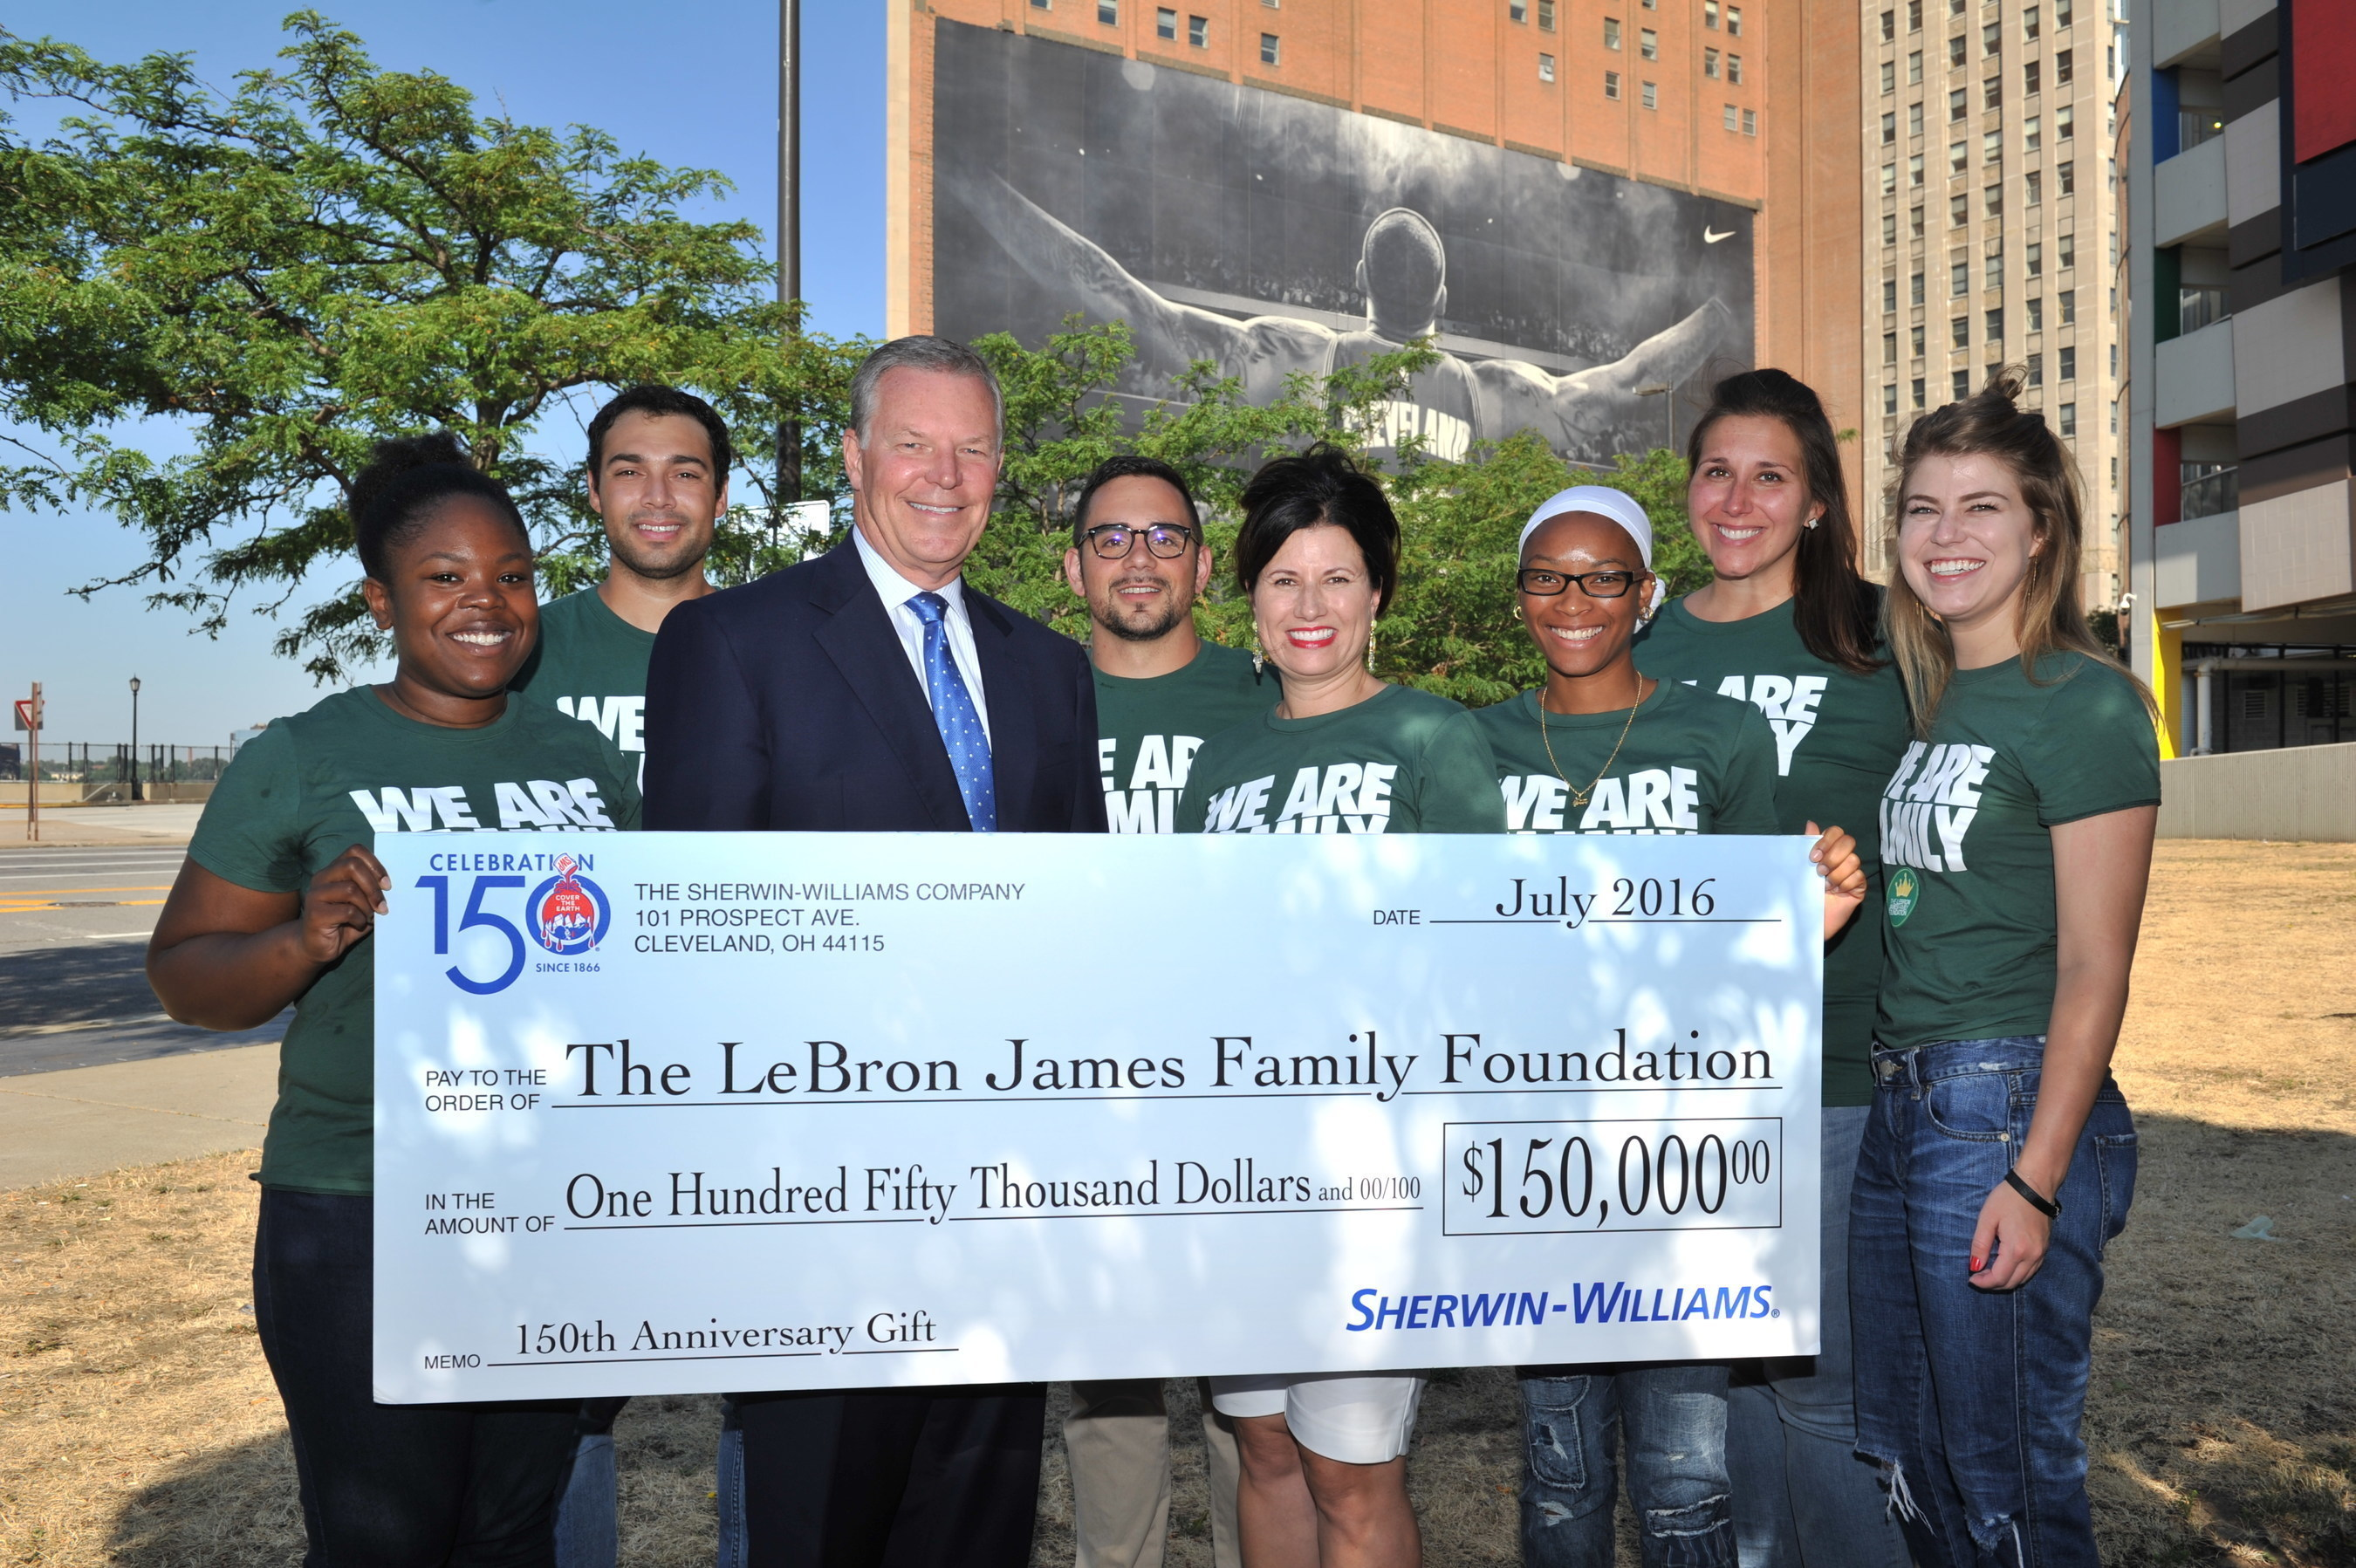 Sherwin-Williams Executive Chairman Chris Connor, Michele Campbell Executive Director of the LeBron James Family Foundation with team members.